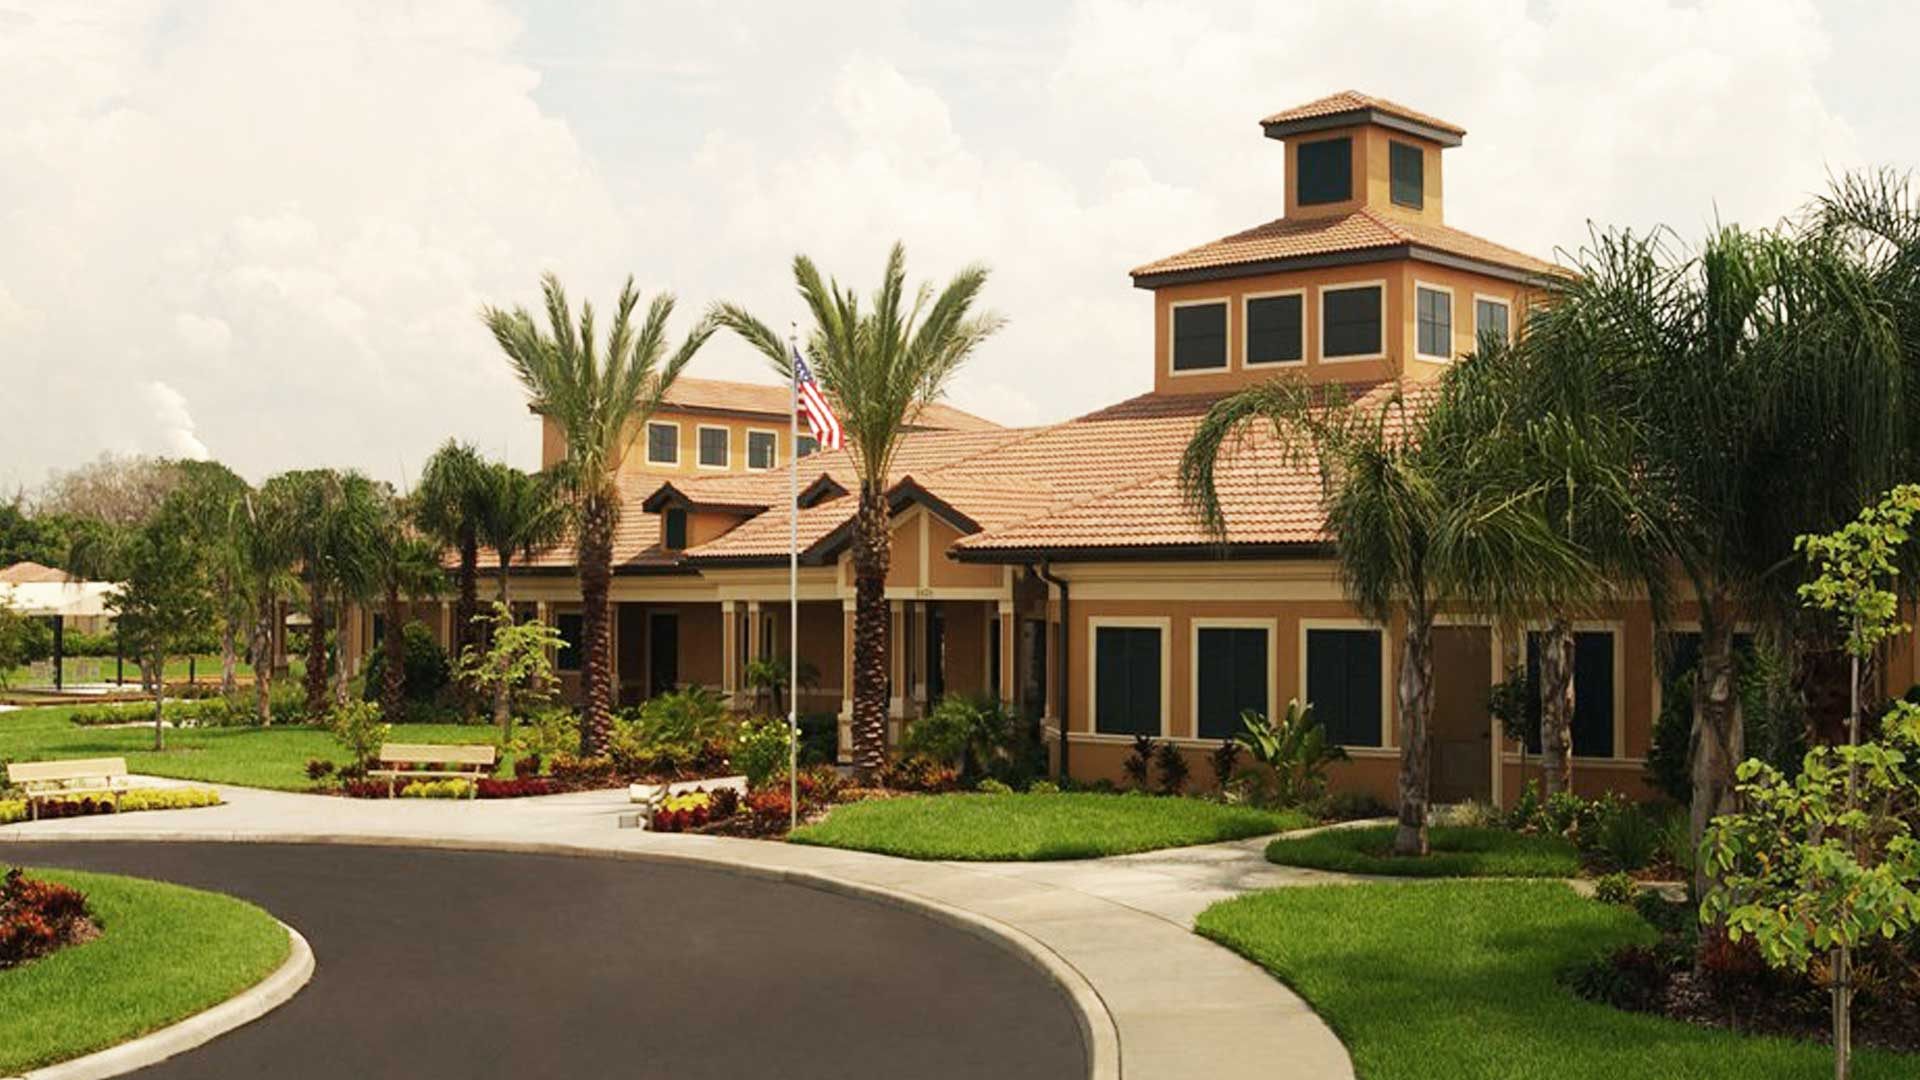 Del Webb Southshore Falls Apollo Beach, FL fitness center.